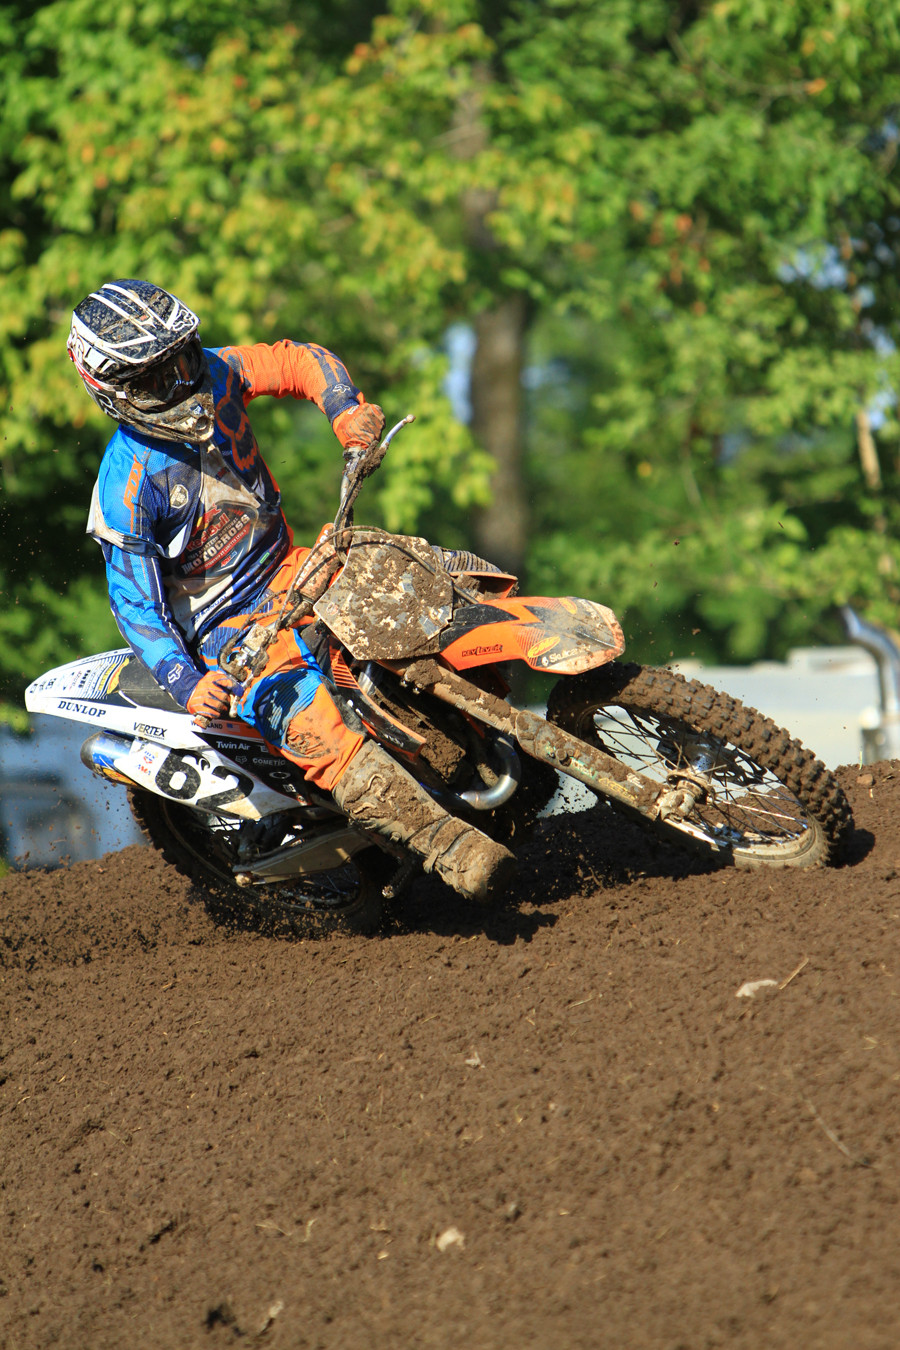 Jesse Wentland - Day 3: 2012 Red Bull AMA Amateur National Motocross Championships - Motocross Pictures - Vital MX